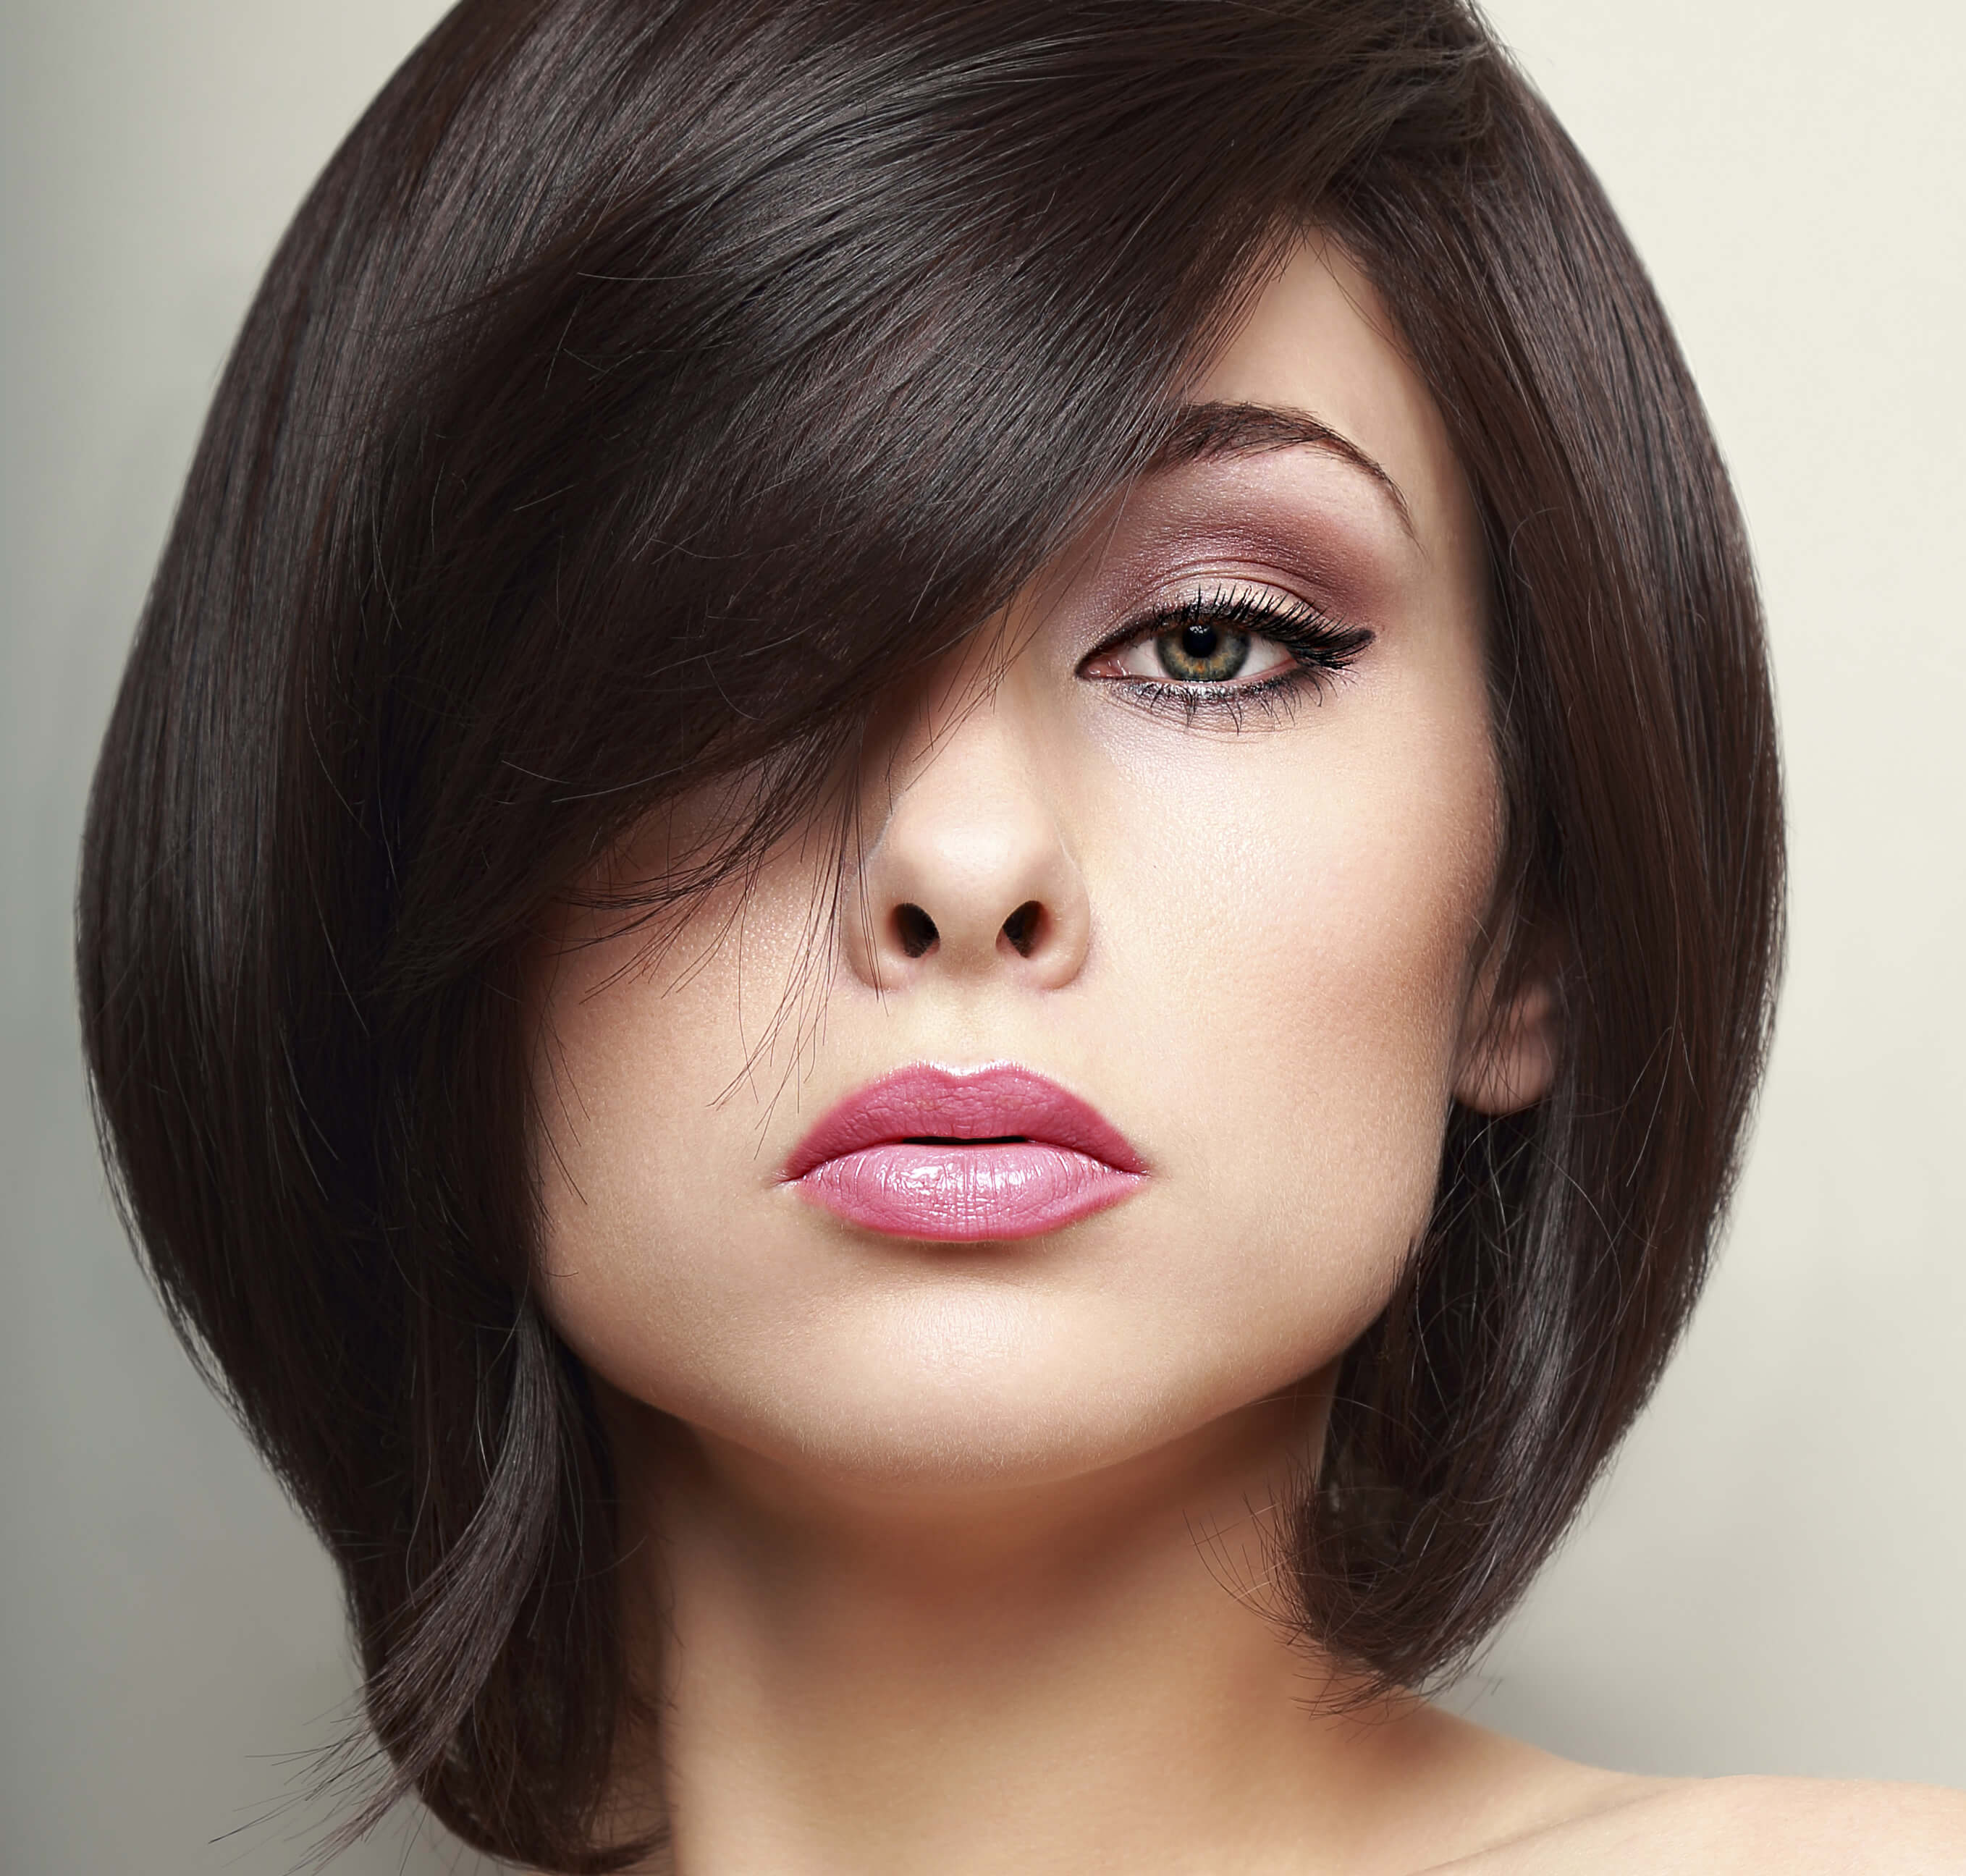 Hairstyles That Can Take Years Off Your Look Salon Nouveau